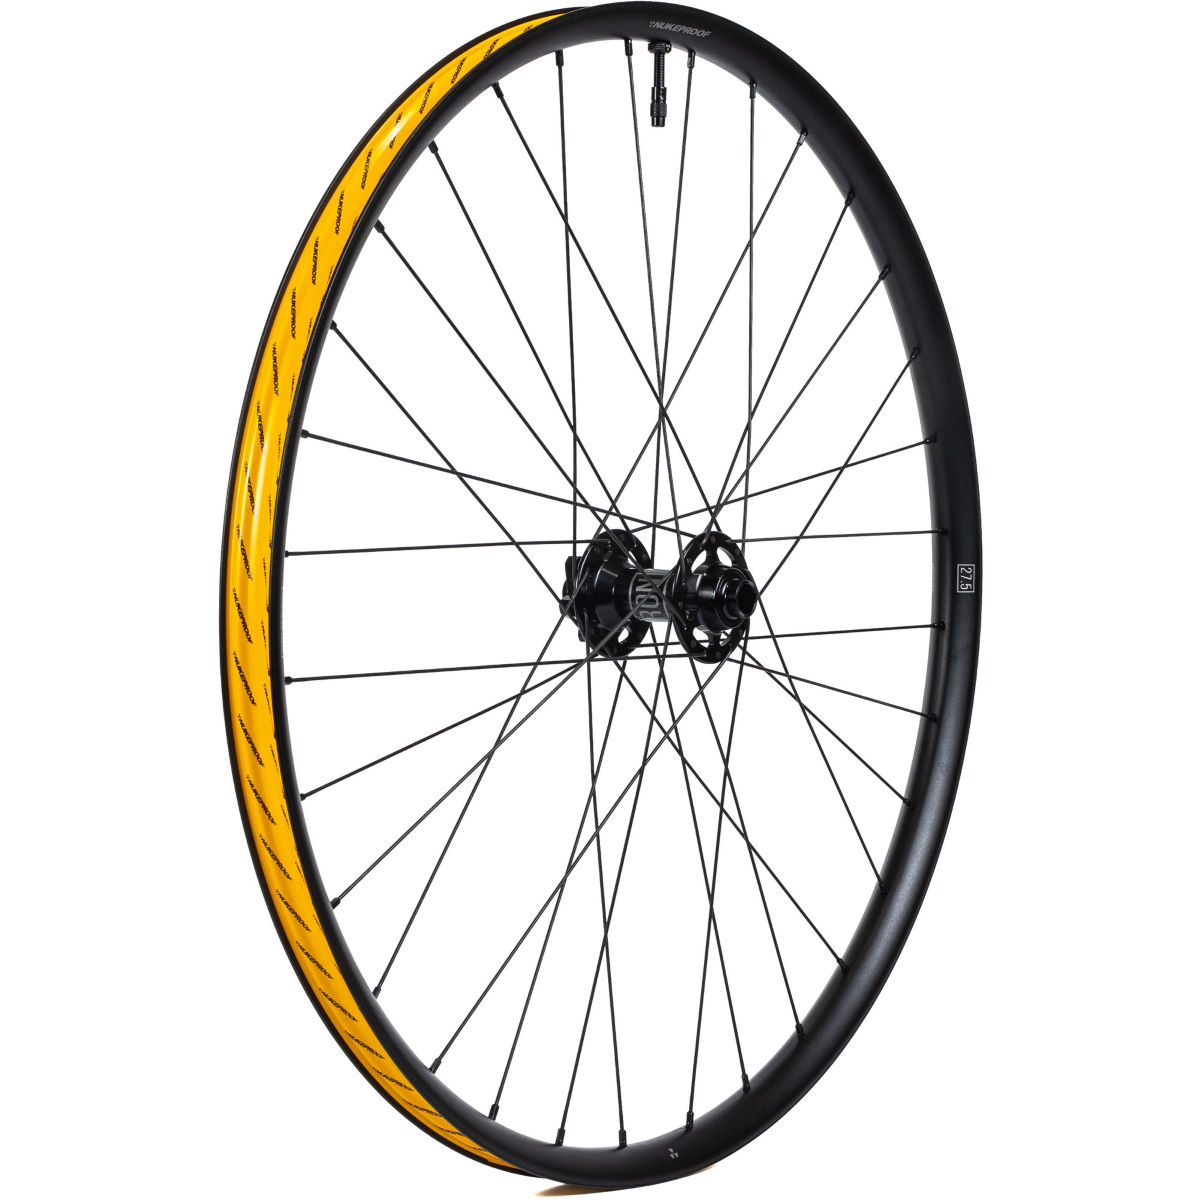 Nukeproof Nukeproof Neutron V2 Front Wheel   Front Wheels